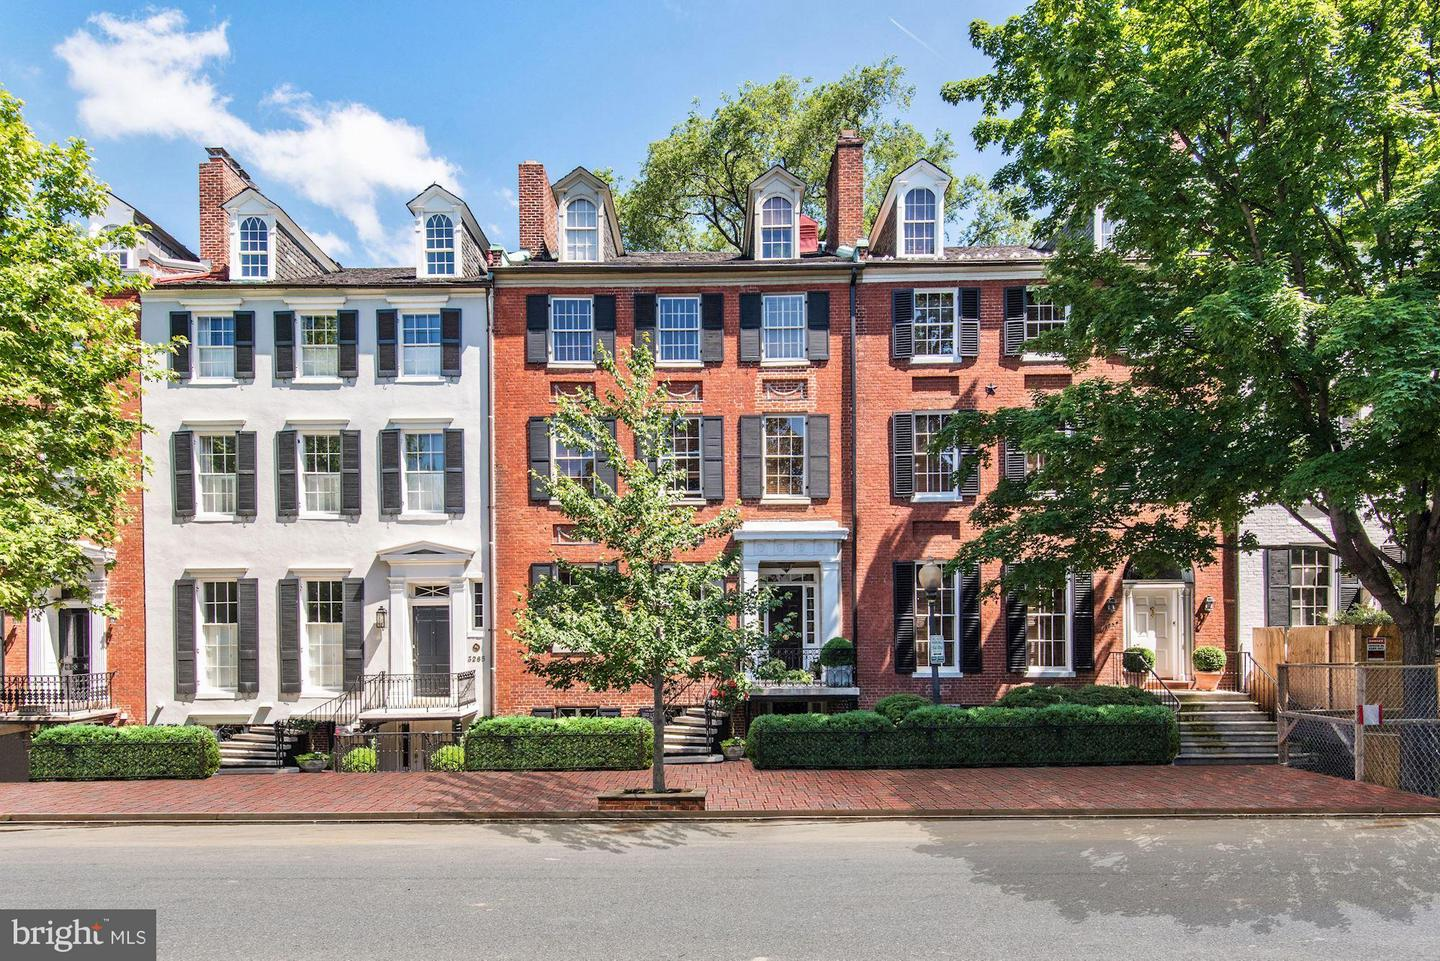 Single Family Home for Sale at 3263 N St Nw 3263 N St Nw Washington, District Of Columbia 20007 United States